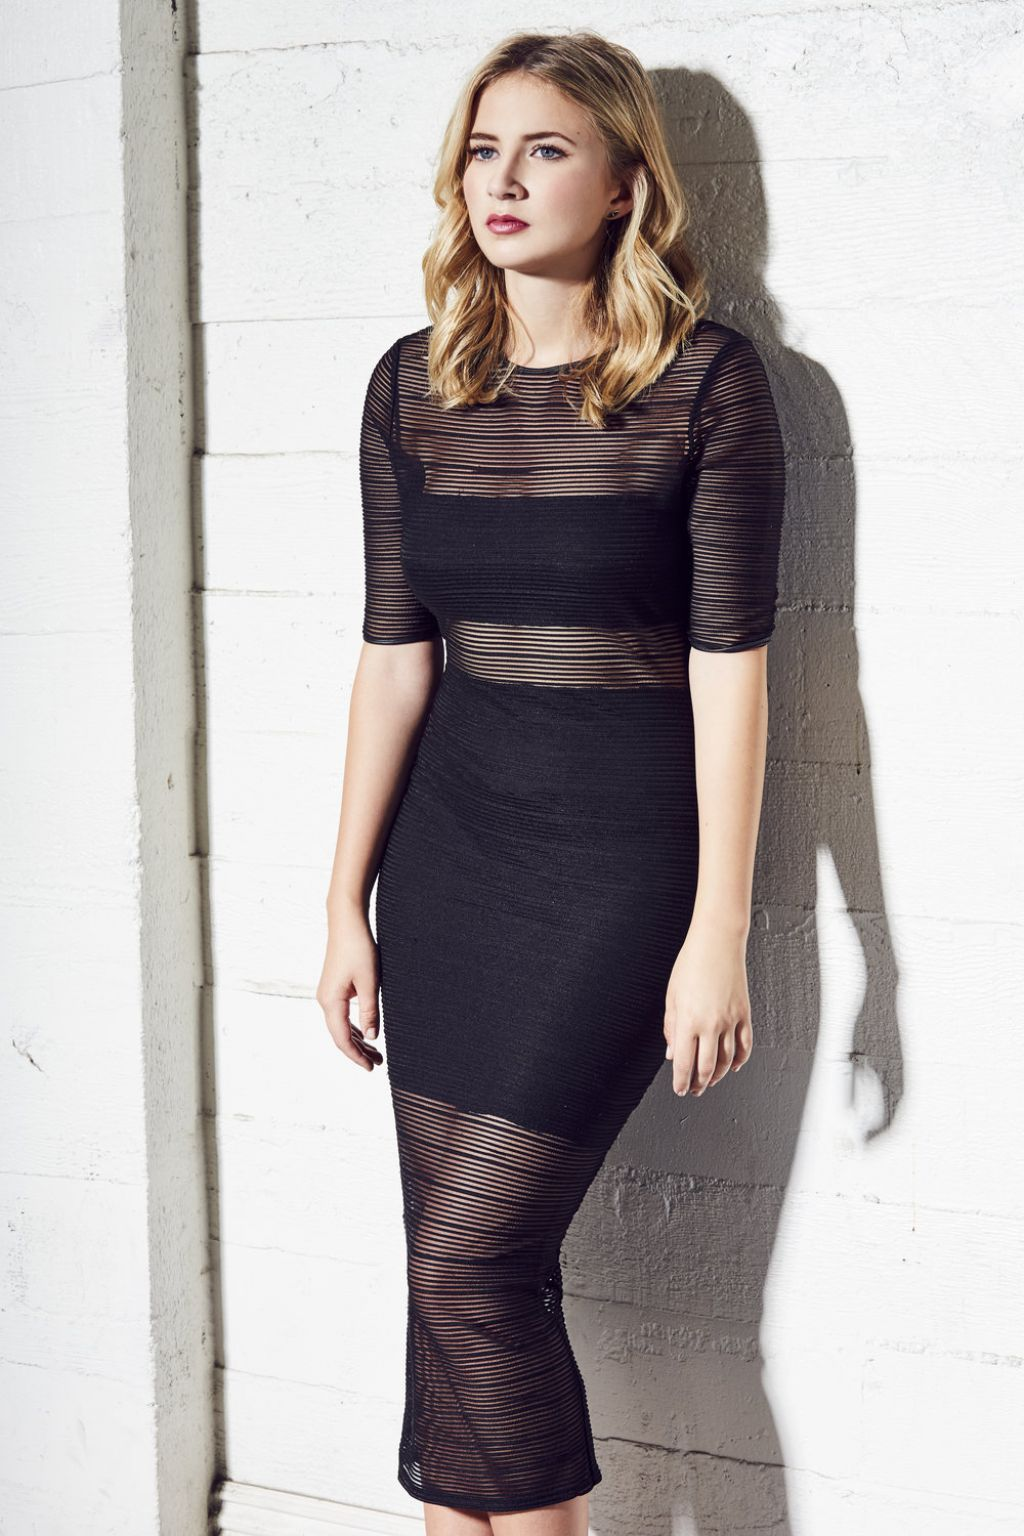 https://celebmafia.com/wp-content/uploads/2017/02/eliza-bennett-photoshoot-february-2017-3.jpg